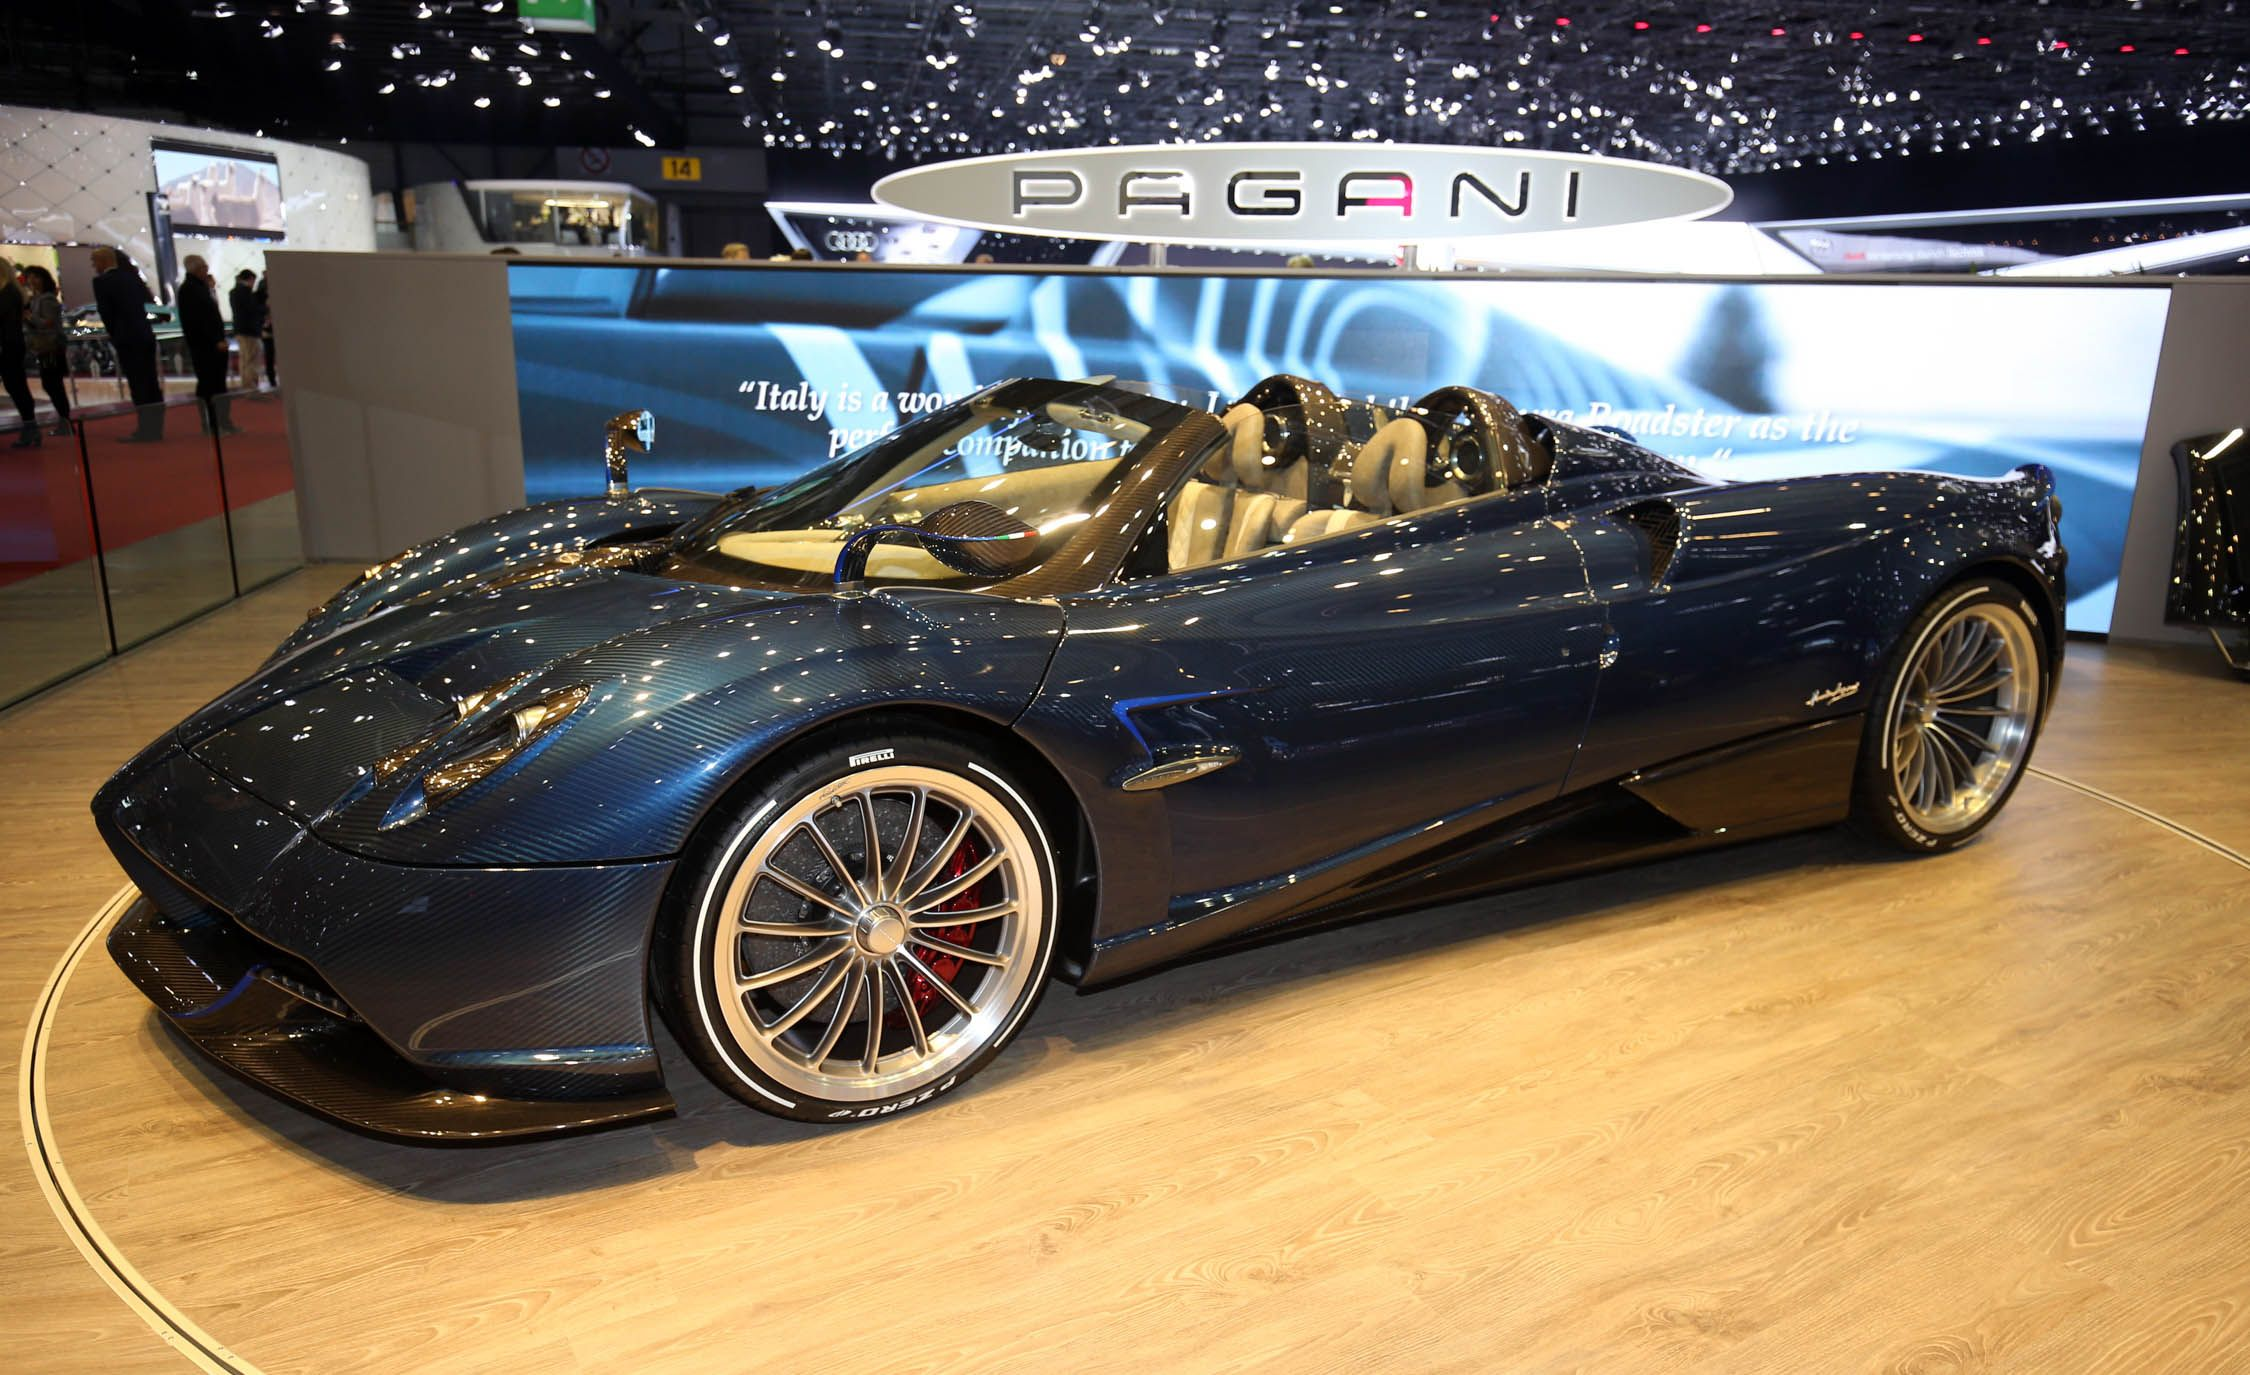 2018 Pagani Huayra Reviews Pagani Huayra Price Photos And Specs